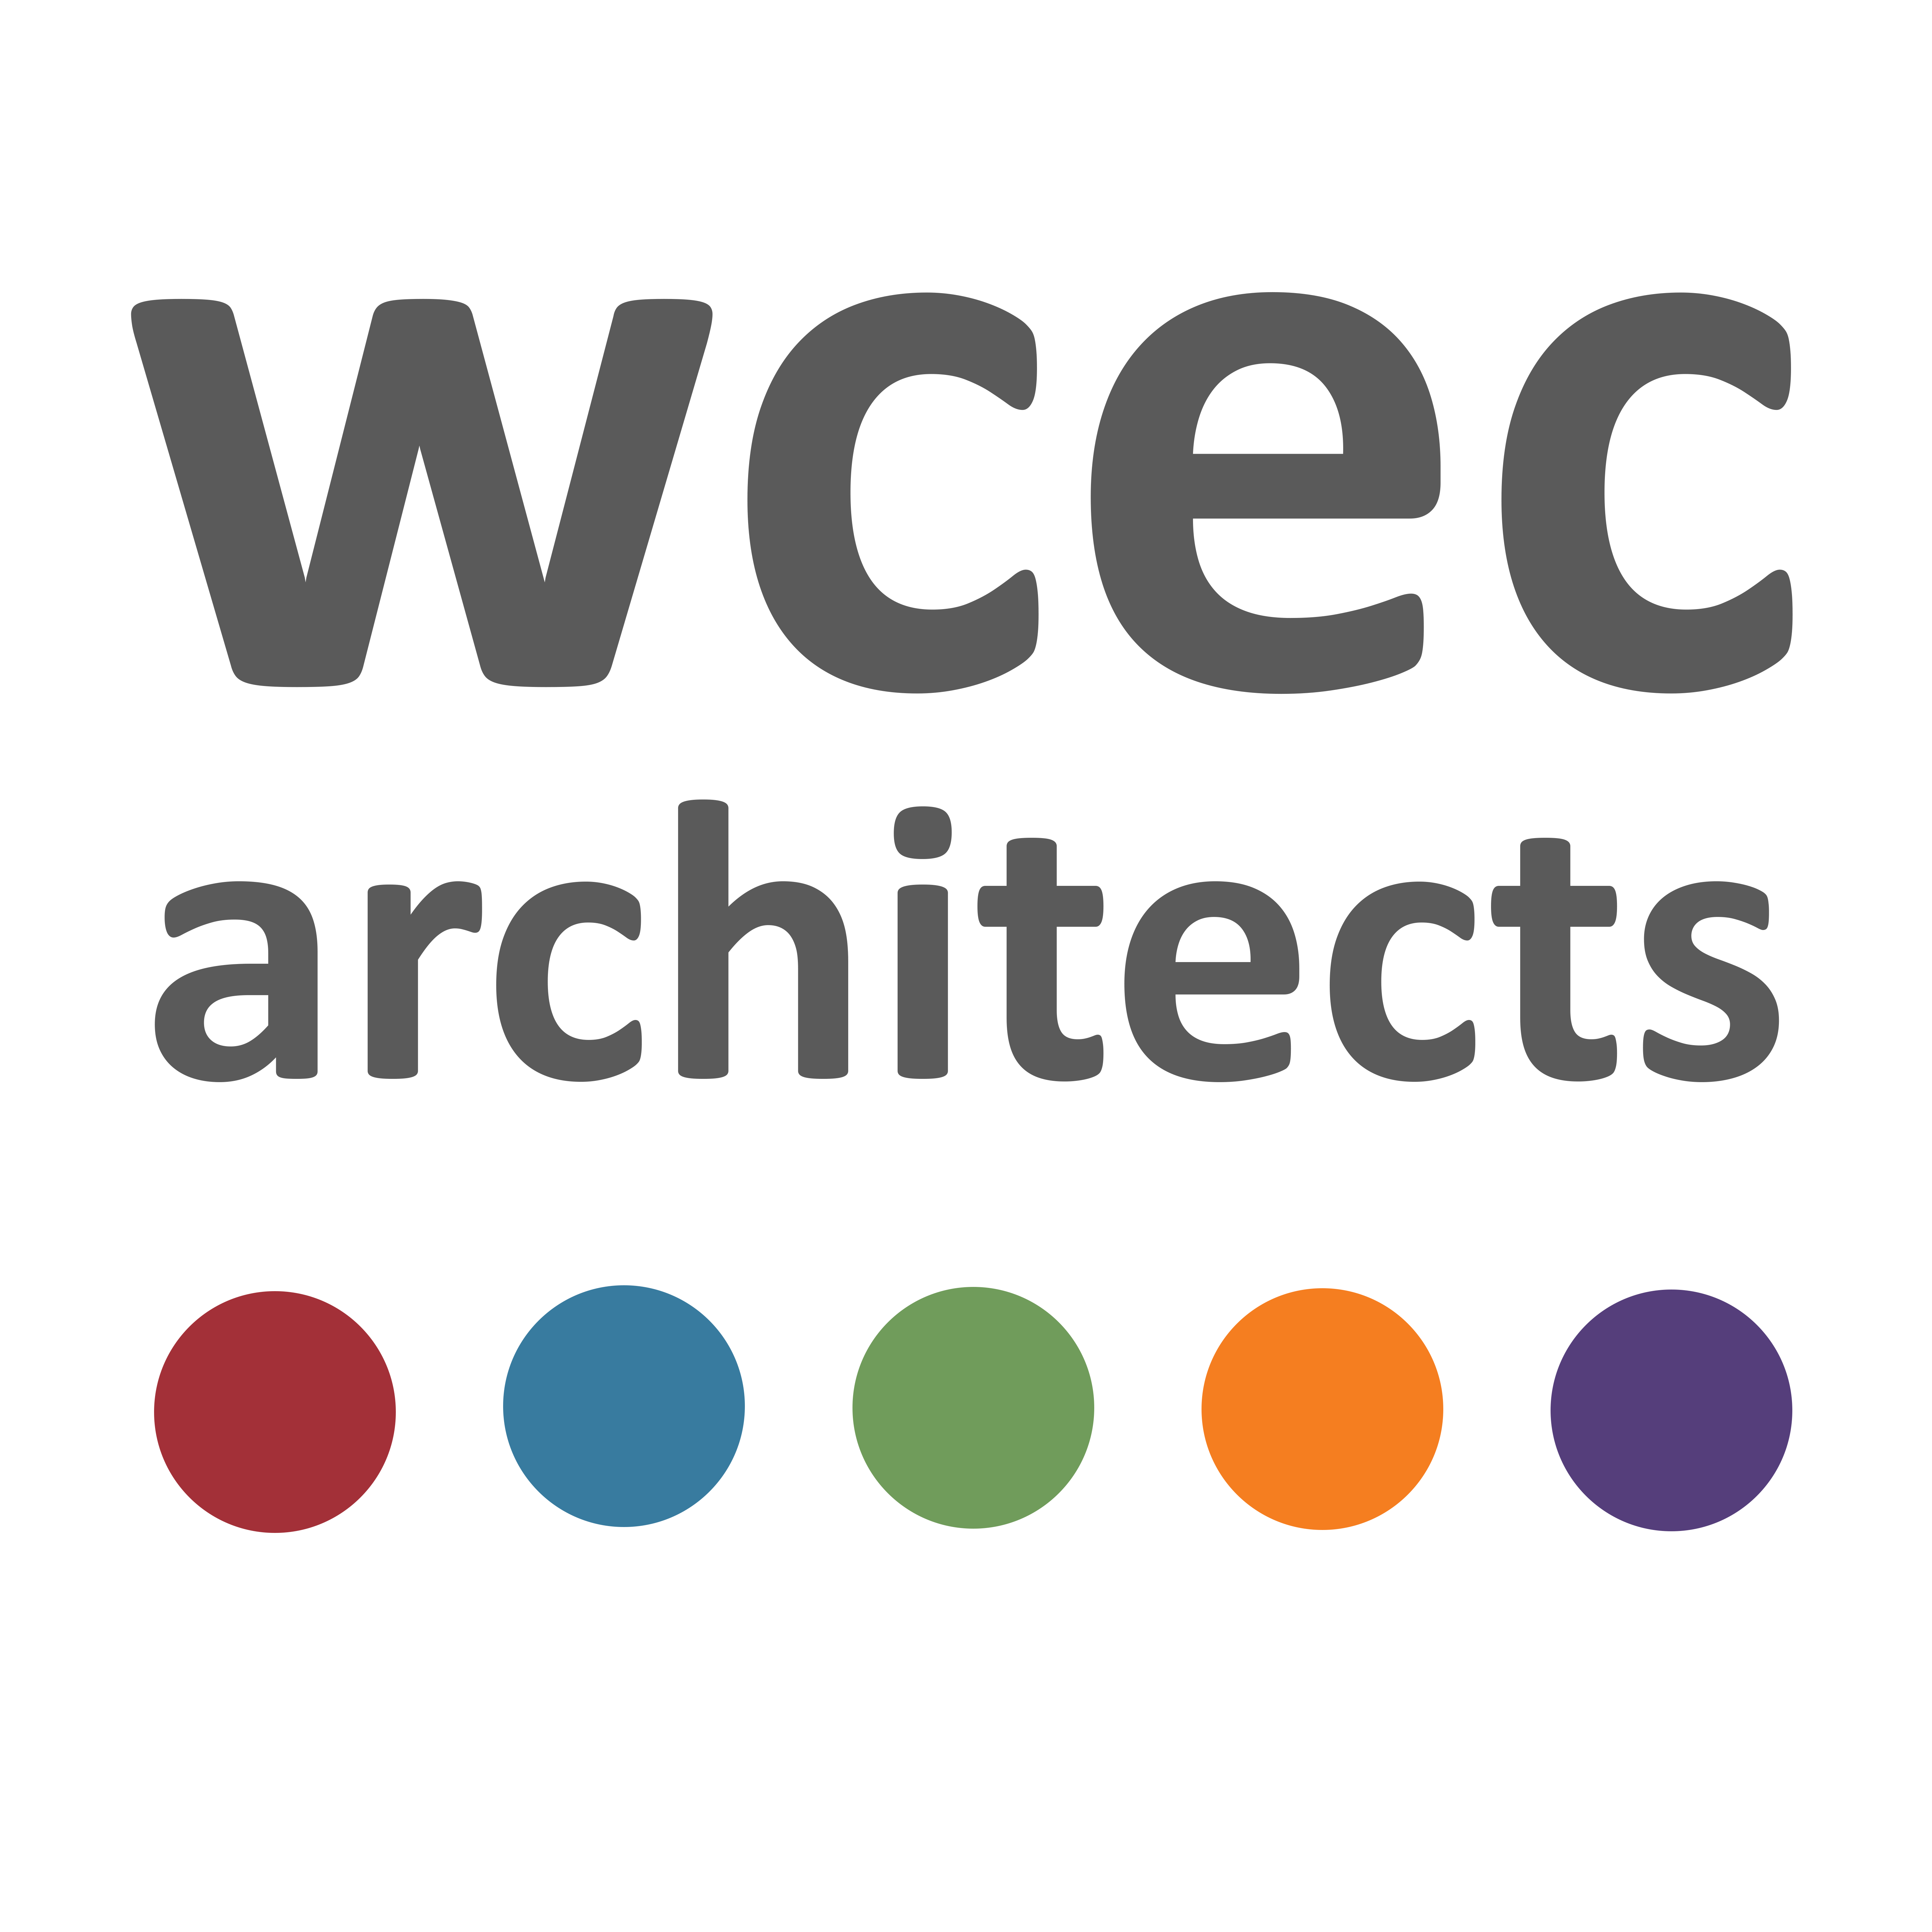 WCEC ARCHITECTS_Group Style Logo